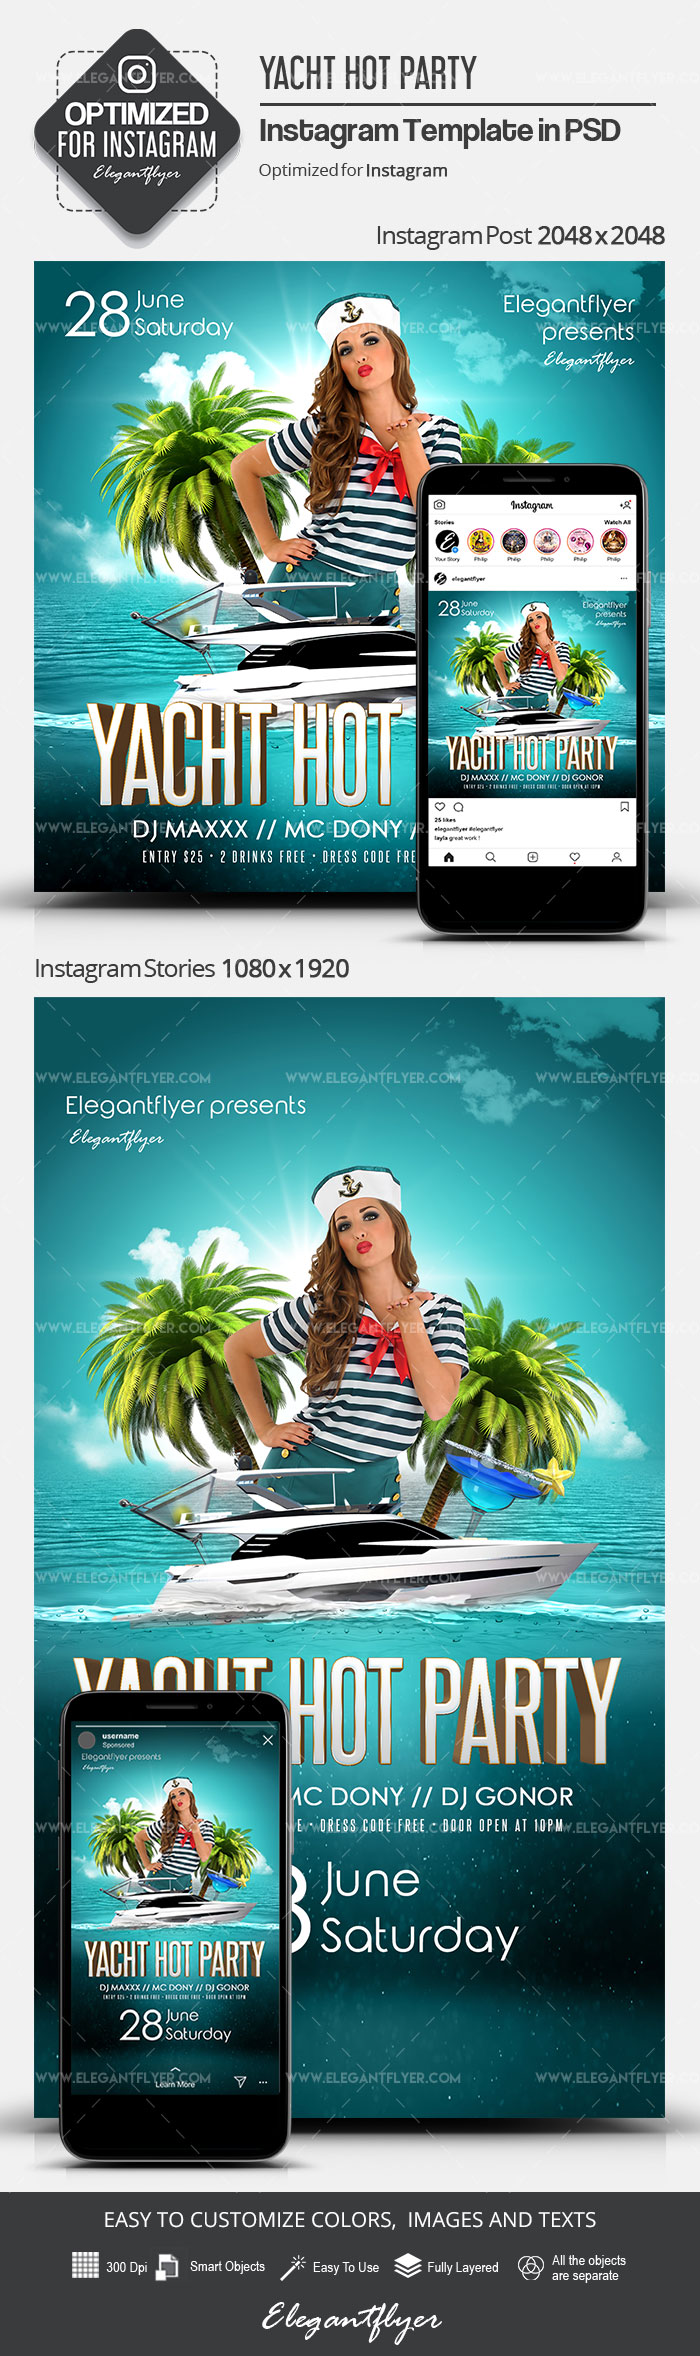 Yacht Hot Party – Instagram Stories Template in PSD + Post Templates